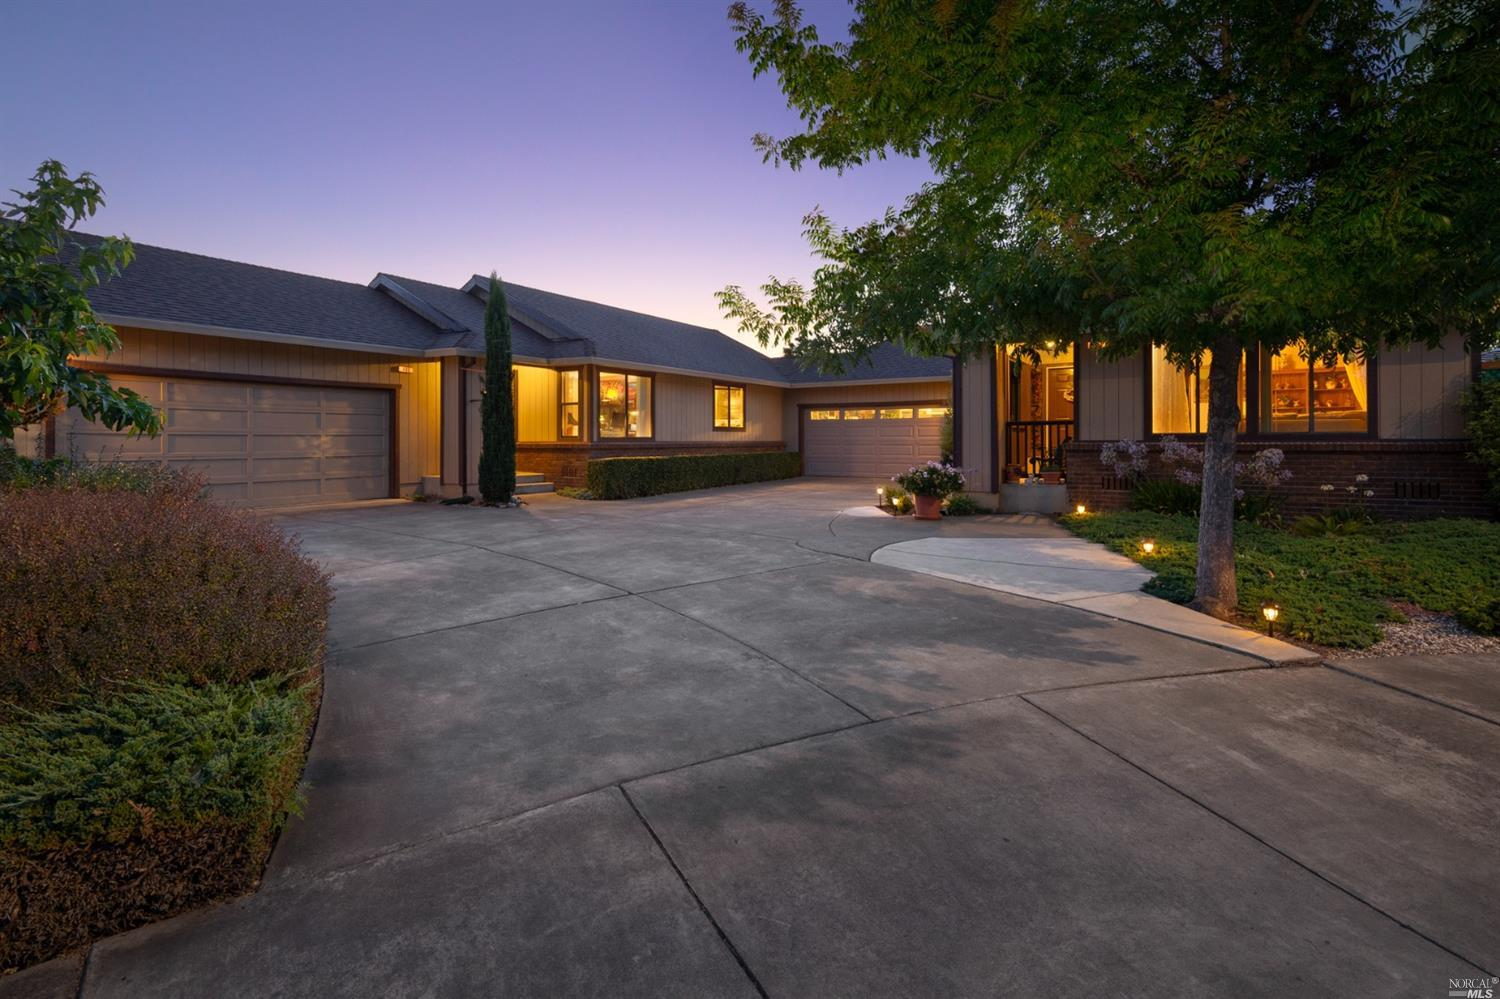 As good as it gets Rincon Valley Duplex! Well appointed single level duplex, located in a desirable Rincon Valley neighborhood. Each spacious unit includes 3 beds/2 baths and an attached 2-car garage. Both residences include a living room, separate dining area, AC, washer/dryer hook-ups and gloriously large fenced yards. Unit #809 offers peaceful gardens, with pergola, sunny deck, mature landscaping and workshop. Unit #811 includes a large storage shed and 2 decks, which opens up to the vegetable garden. Only 2 blocks from Oliver's Shopping Center and a short walk to the library, parks. Highly desirable Rincon Valley school district. Live in one and rent the other or hold for investment. Also listed as MLS #21927923 in the residential categ